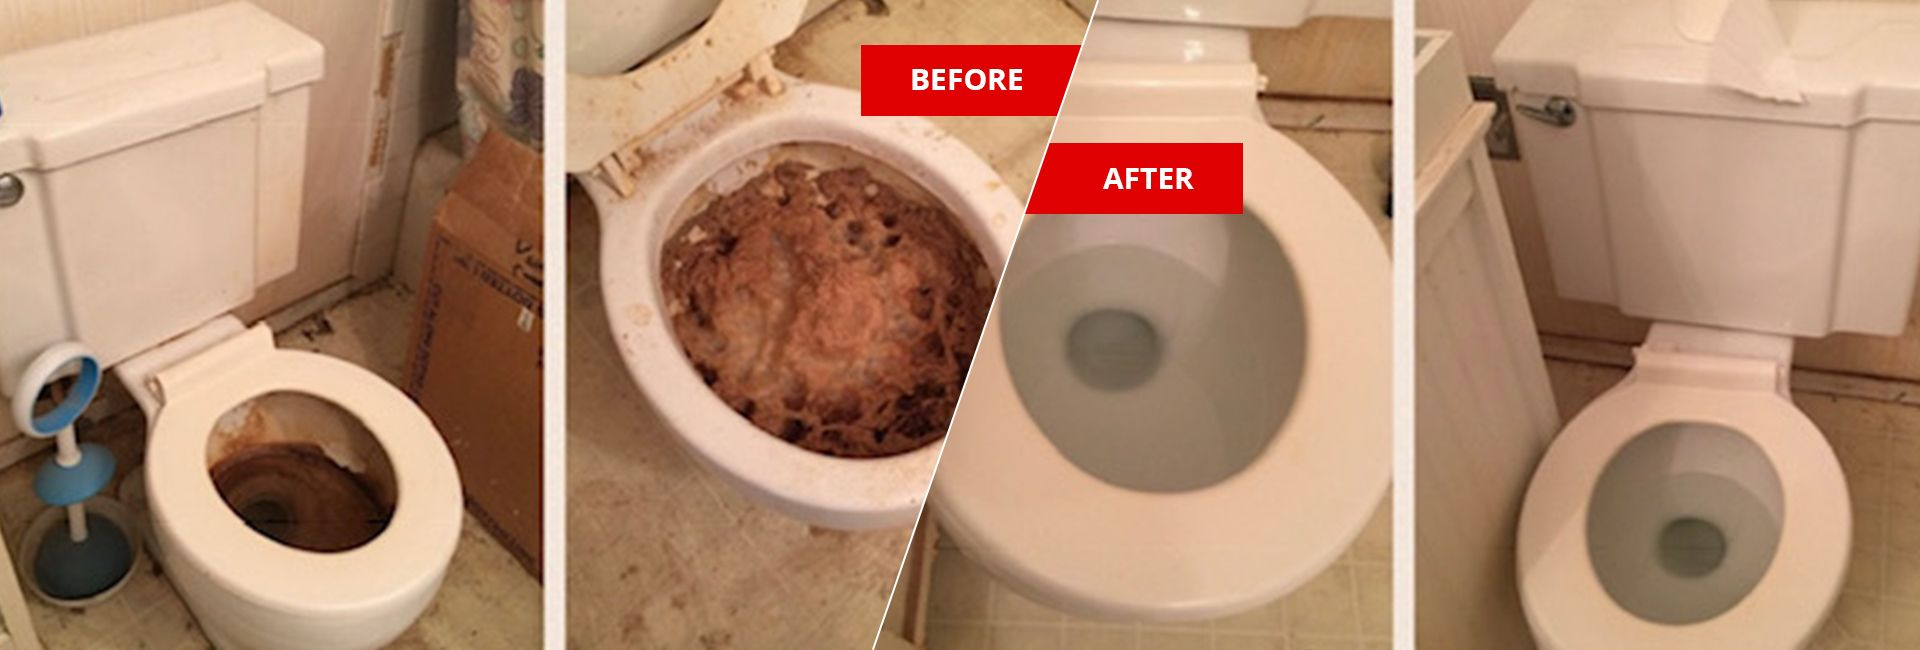 Feces urine cleanup